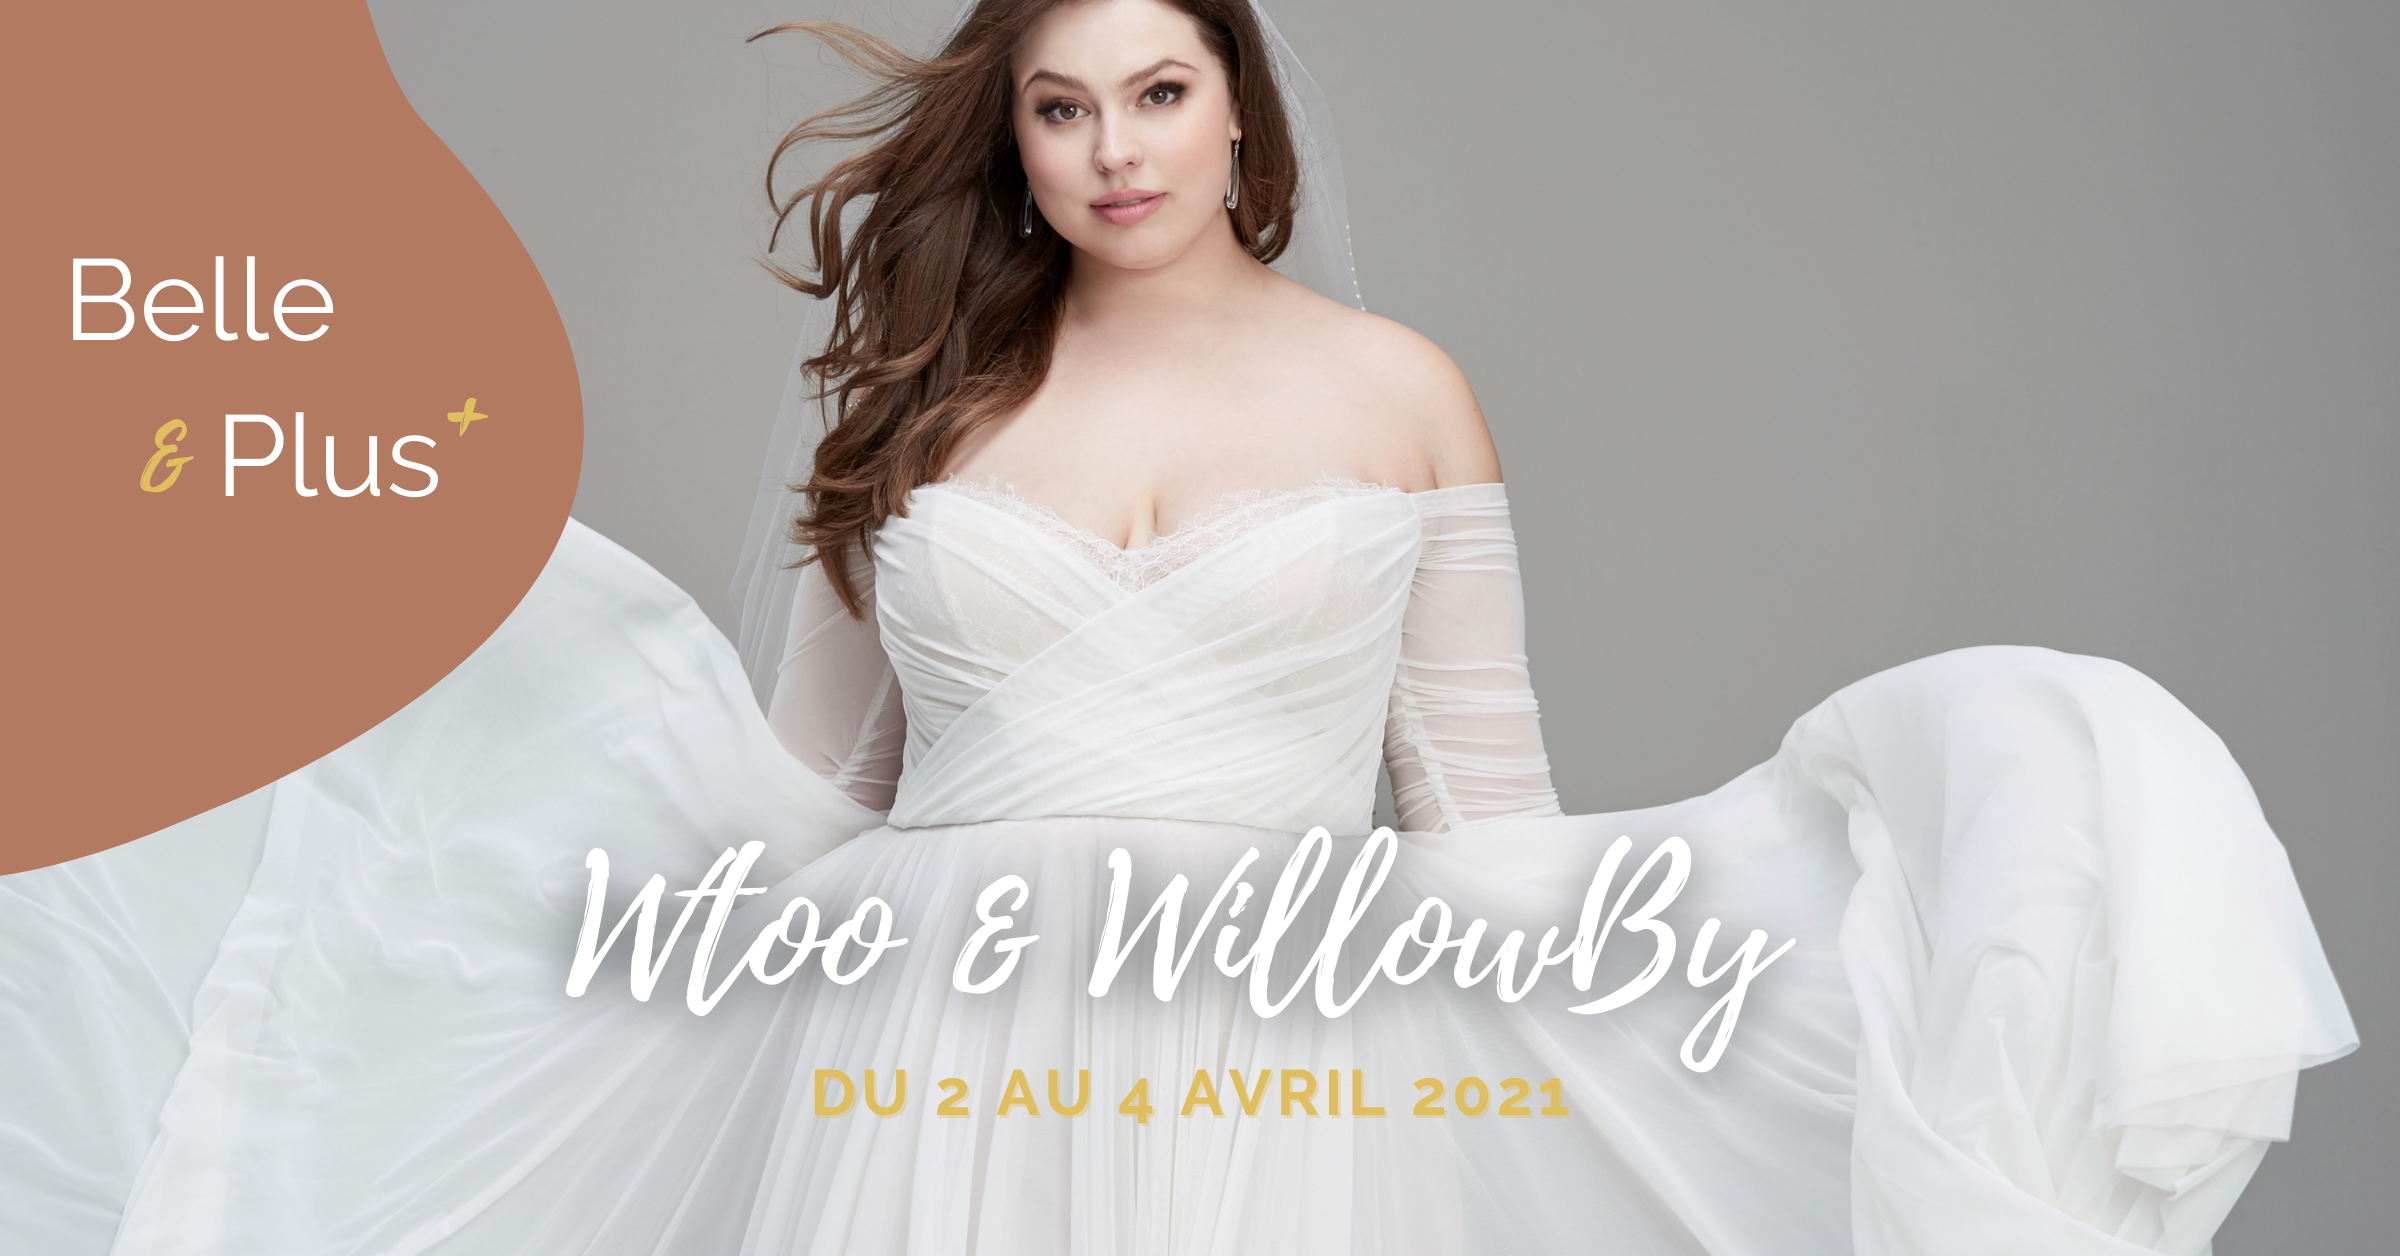 WTOO & WILLOWBY – PLUS-SIZE FROM APRIL 2 TO APRIL 4